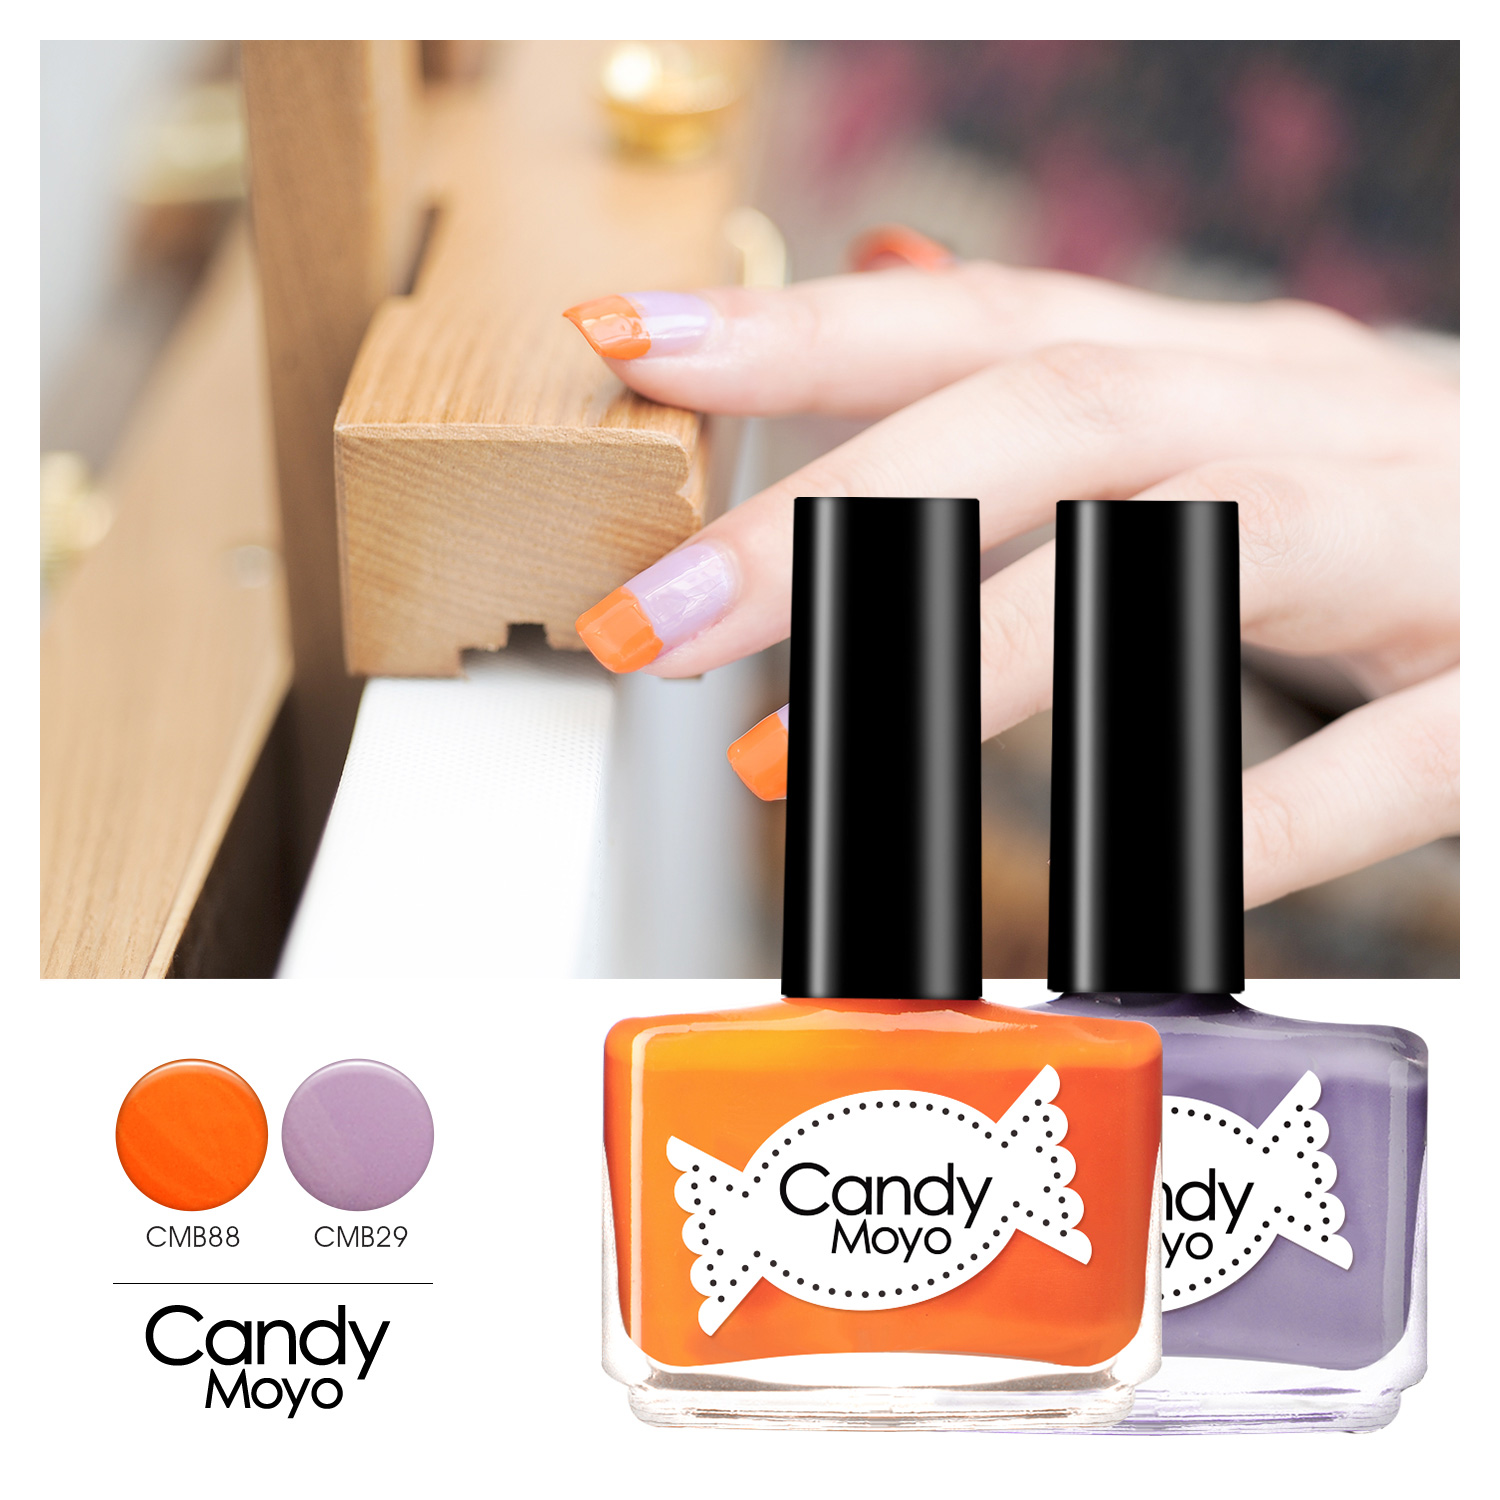 Candy moyo film jade nail polish kit nude color candy color purple taro lavender health beauty armor sets group